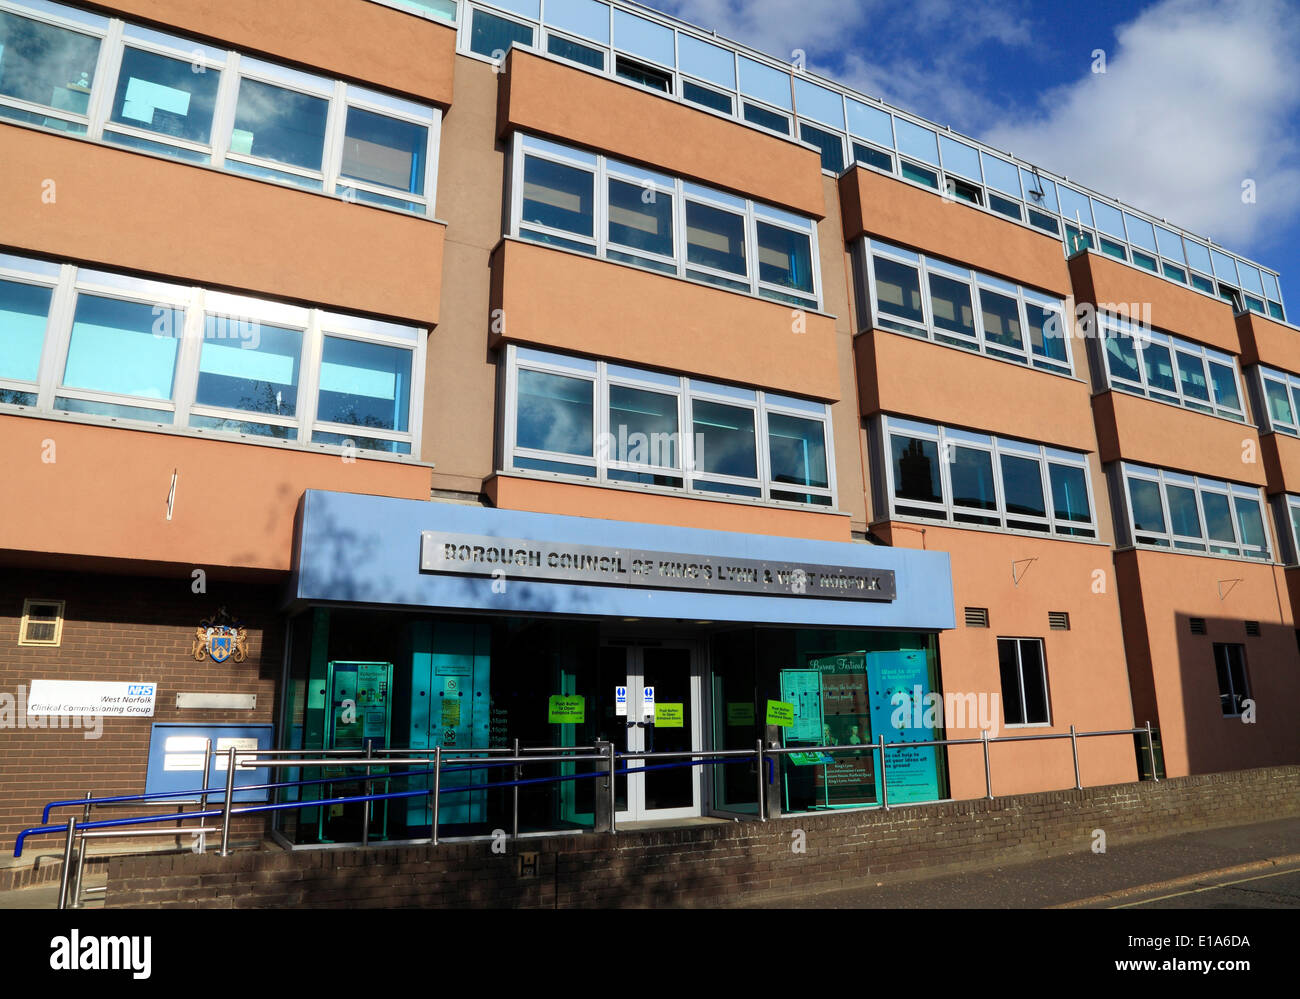 Borough Council of Kings Lynn and West Norfolk offices, English local government councils England UK office - Stock Image